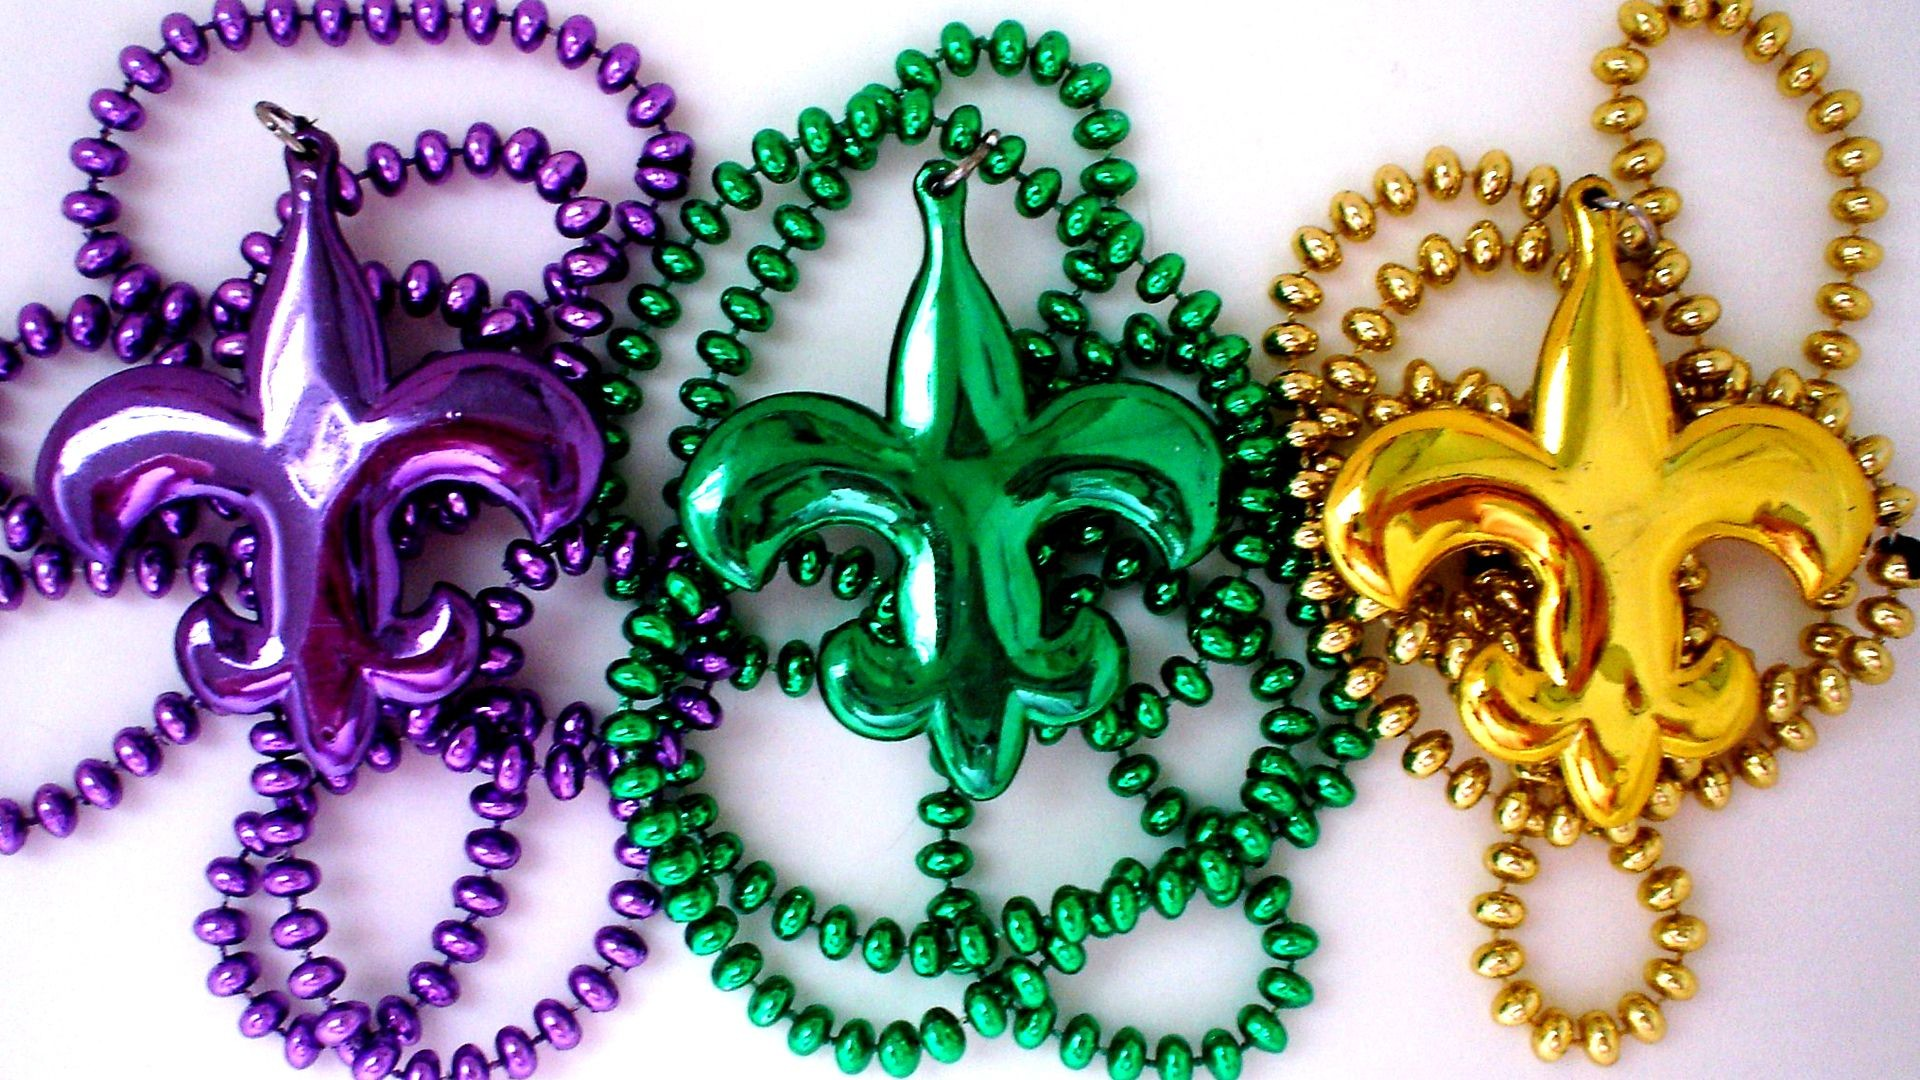 1920x1080 mardi gras wallpaper